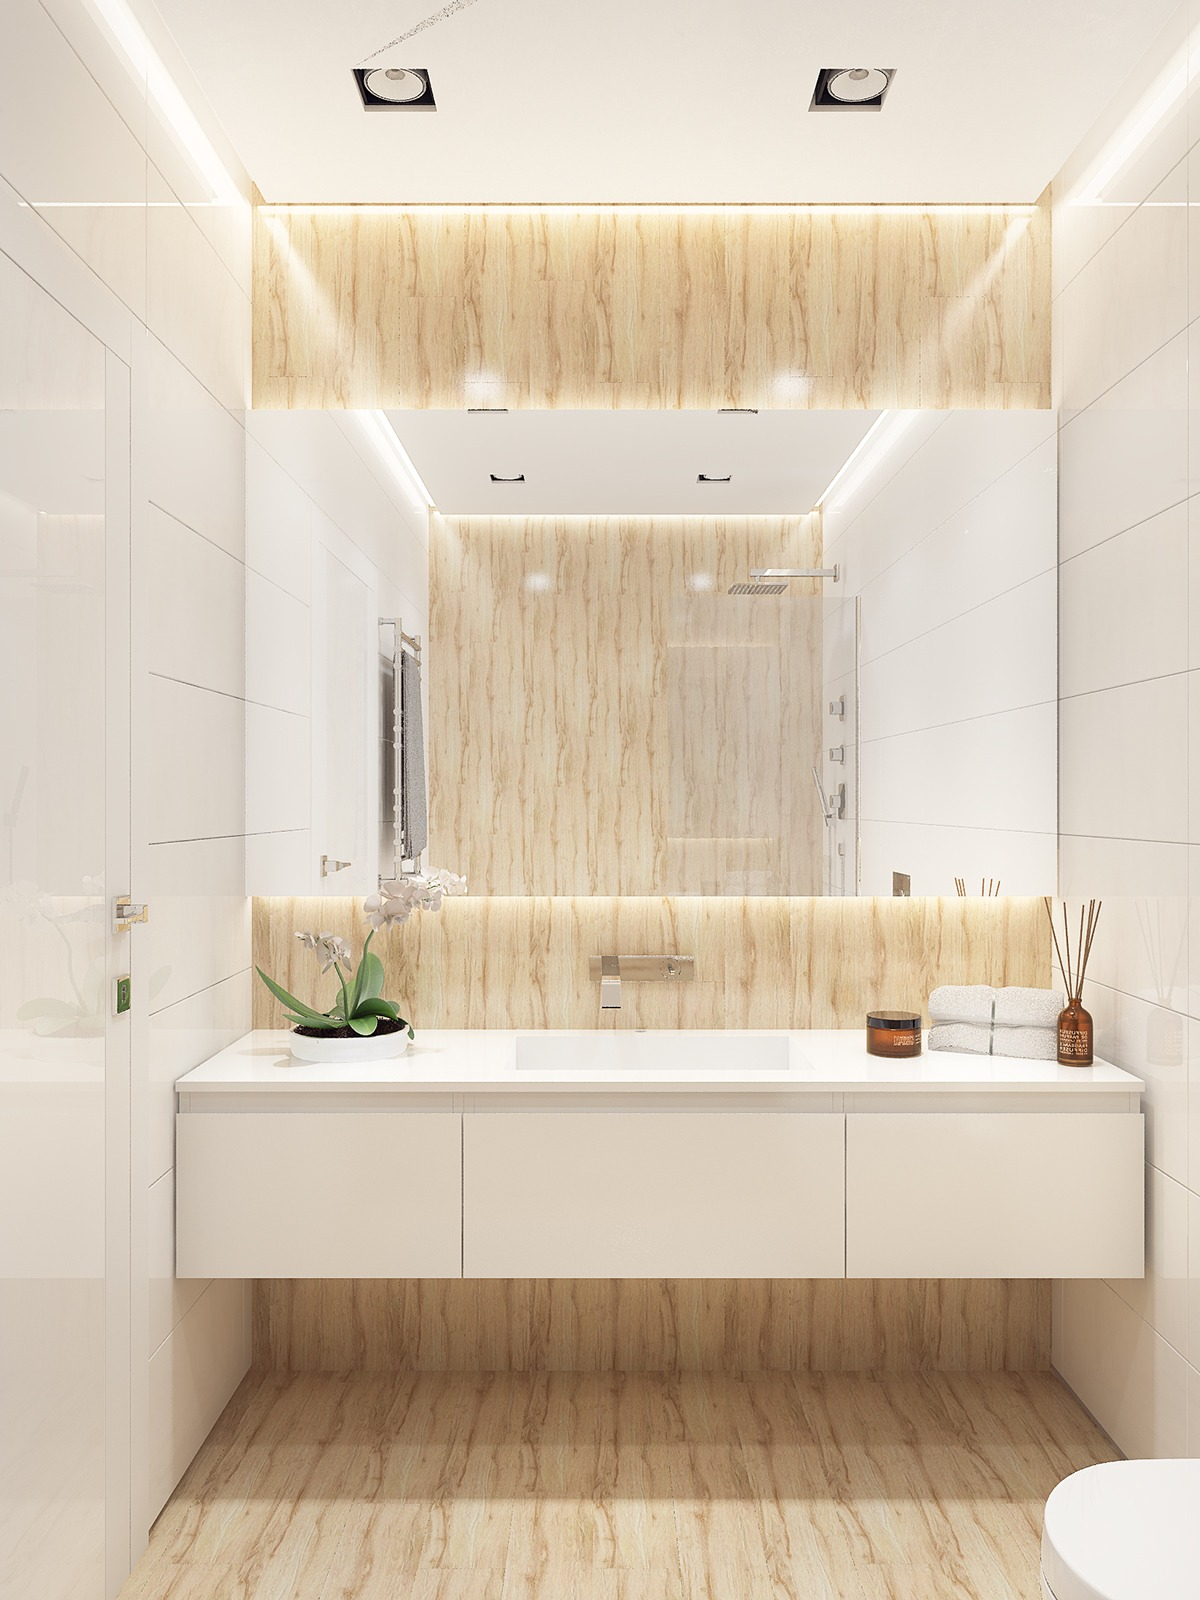 Similarly simple designs with a bright and cheerful tone Simple contemporary bathroom design